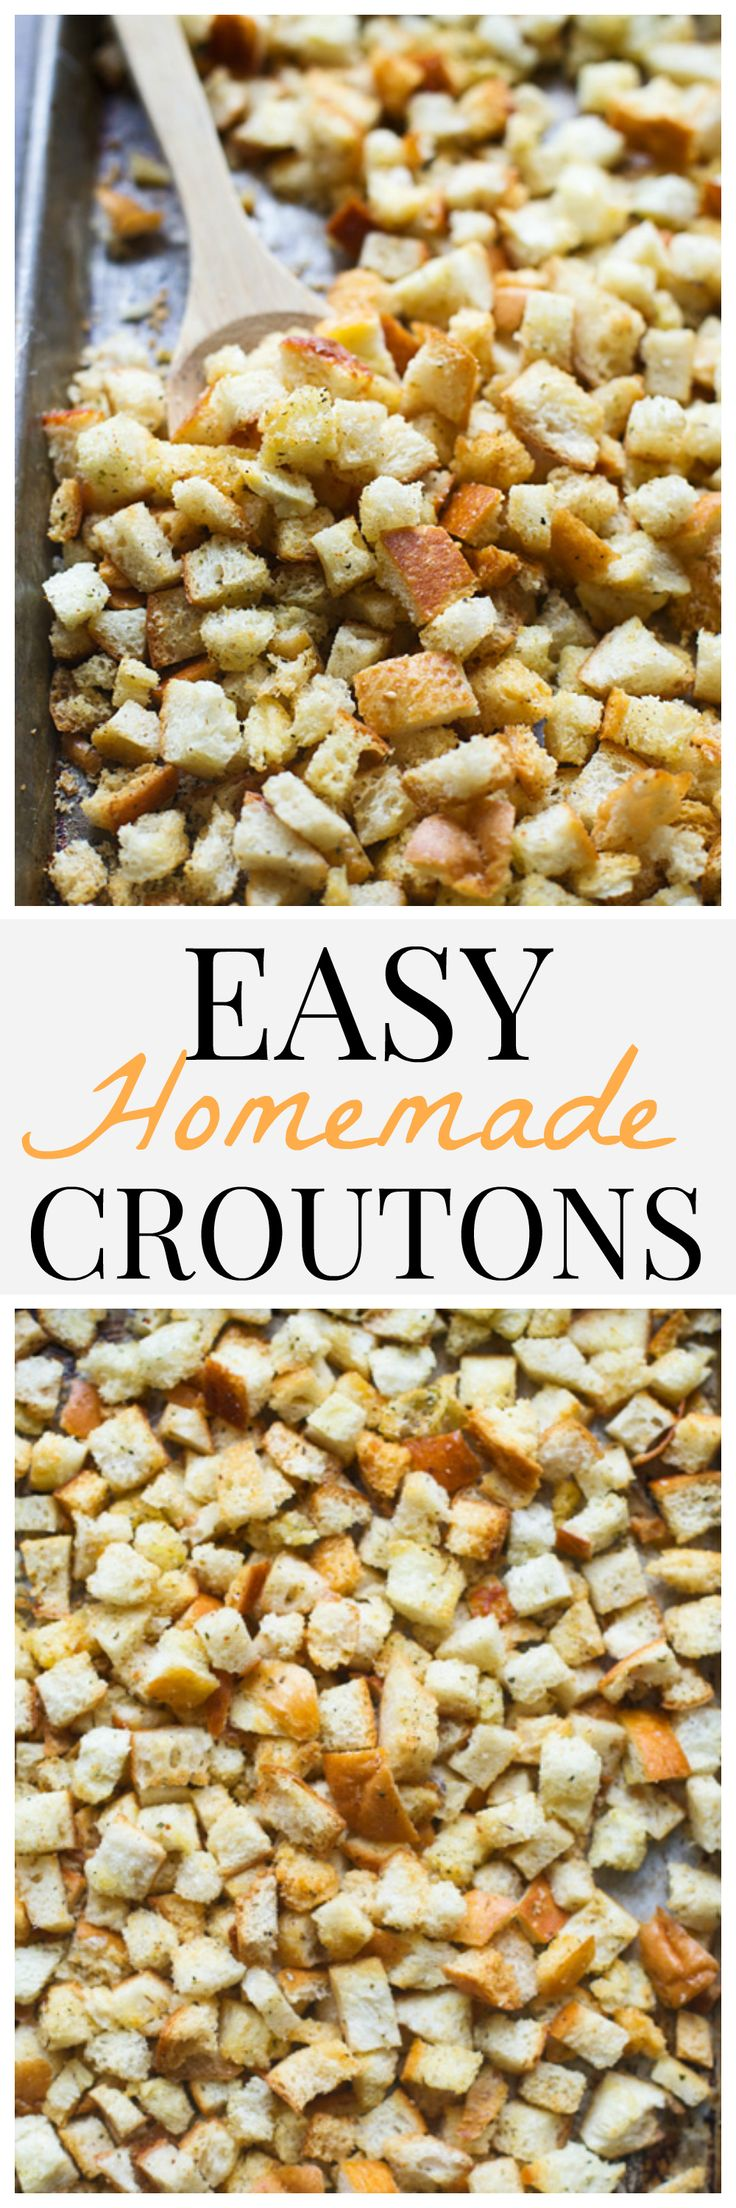 Easy Homemade Croutons - Never buy store-bought again!